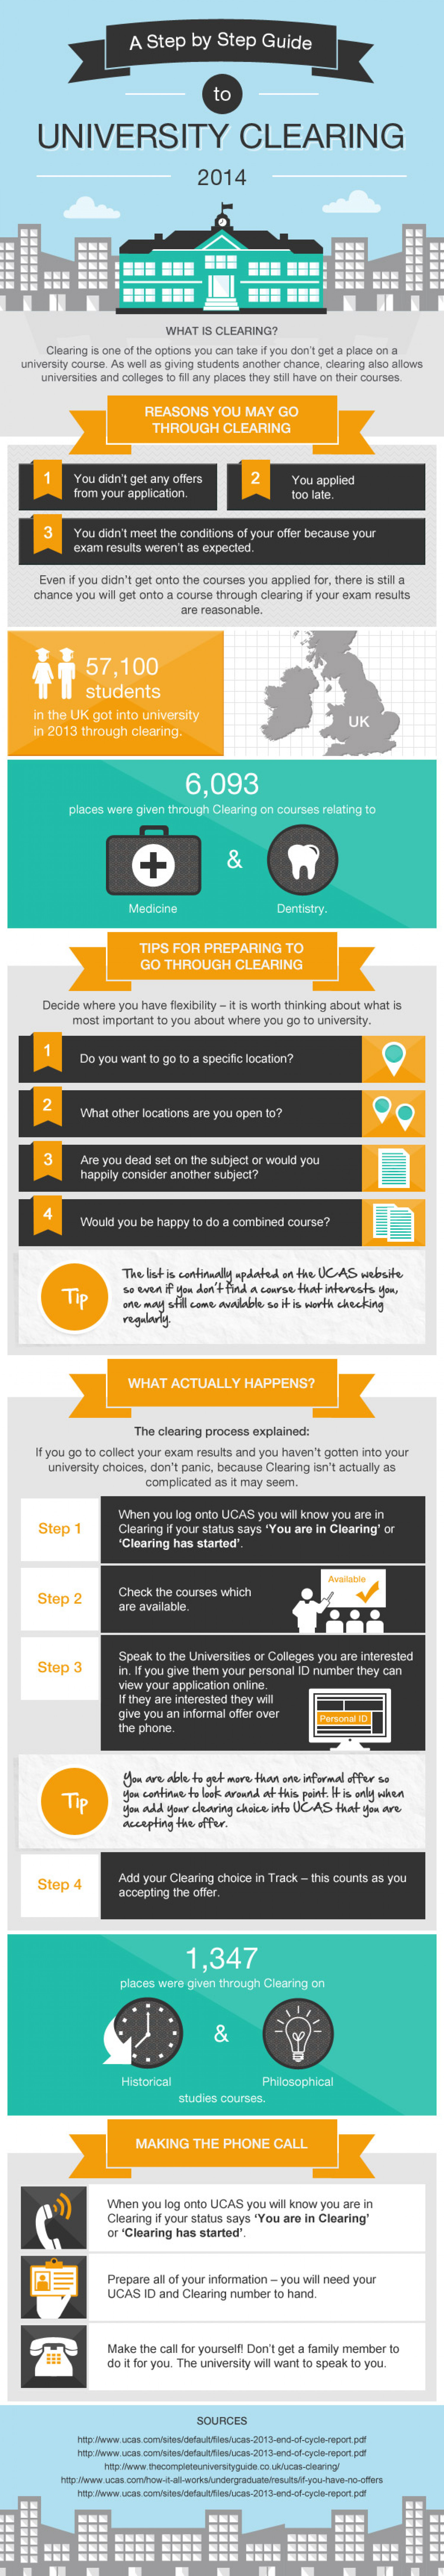 A Step by Step Guide to University Clearing 2014 Infographic